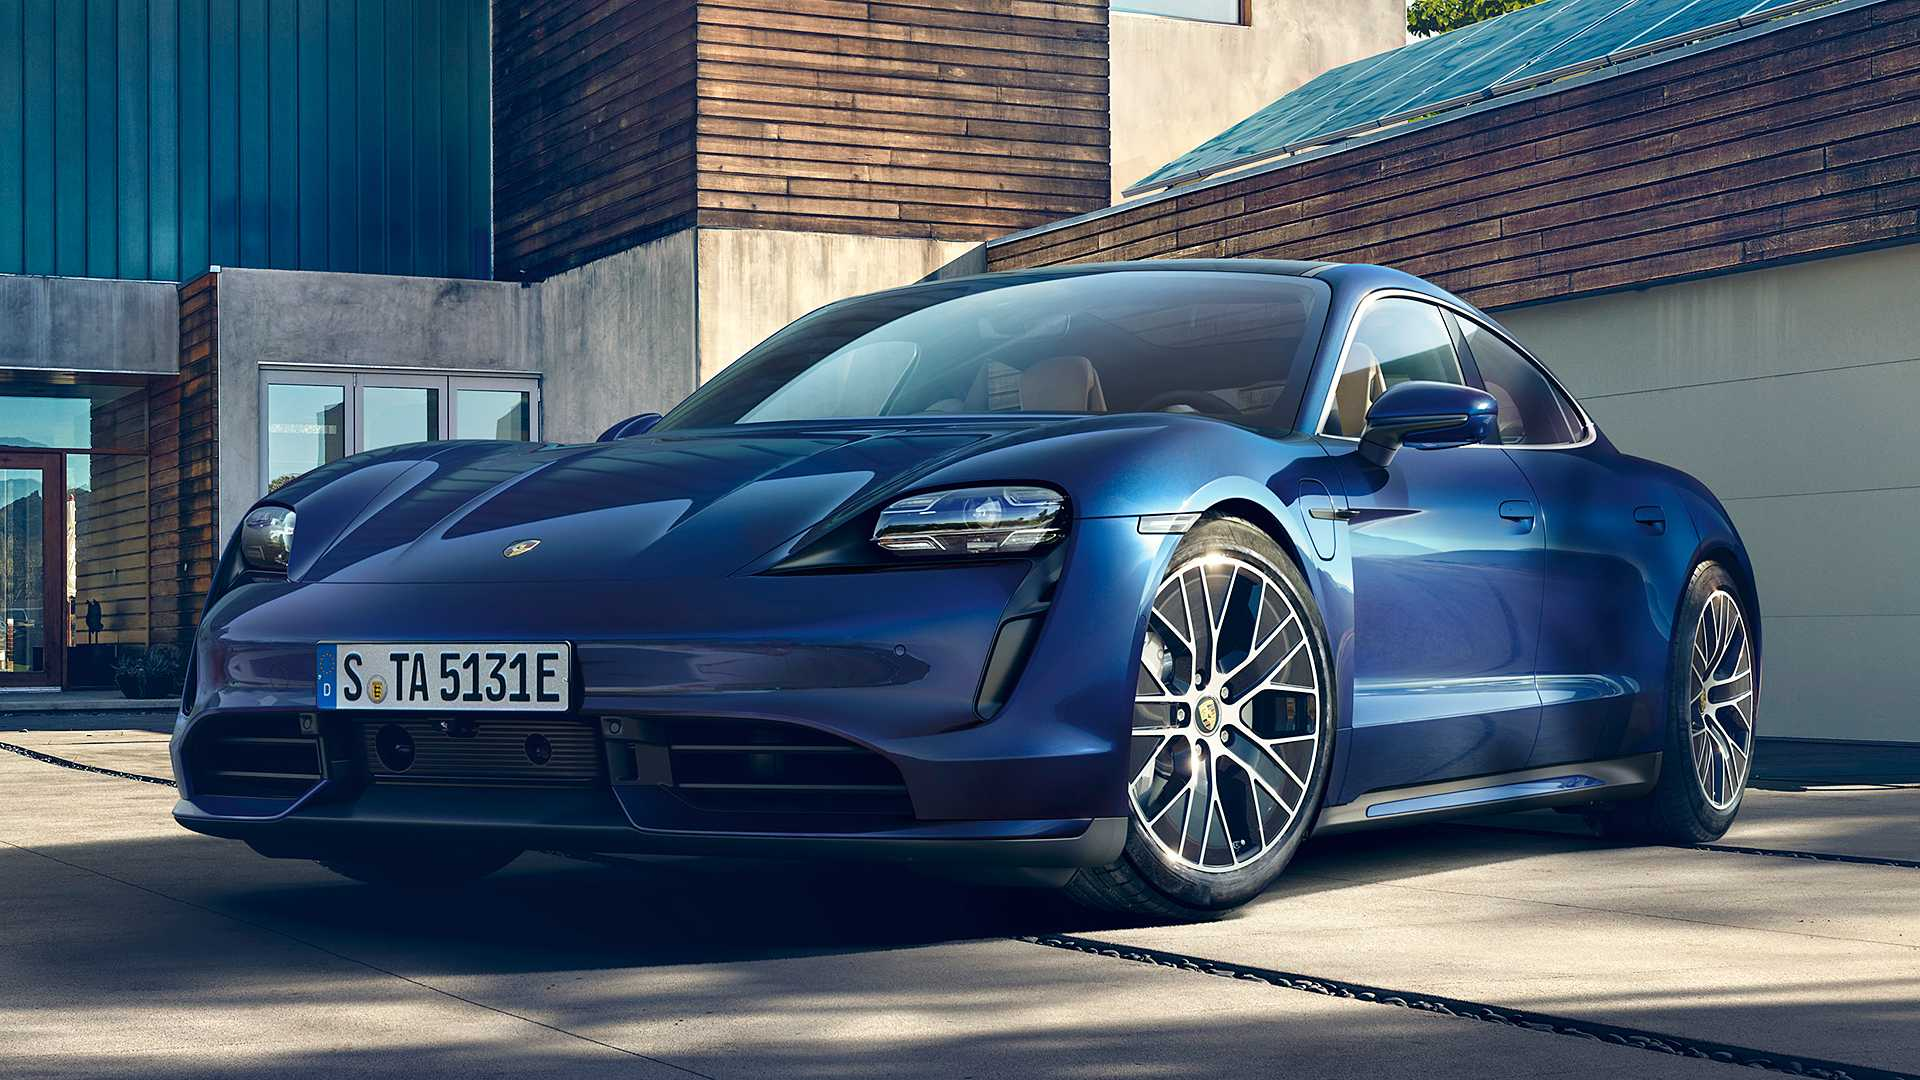 2020 Porsche Taycan Official Video Roundup Is Worth Watching 1920x1080